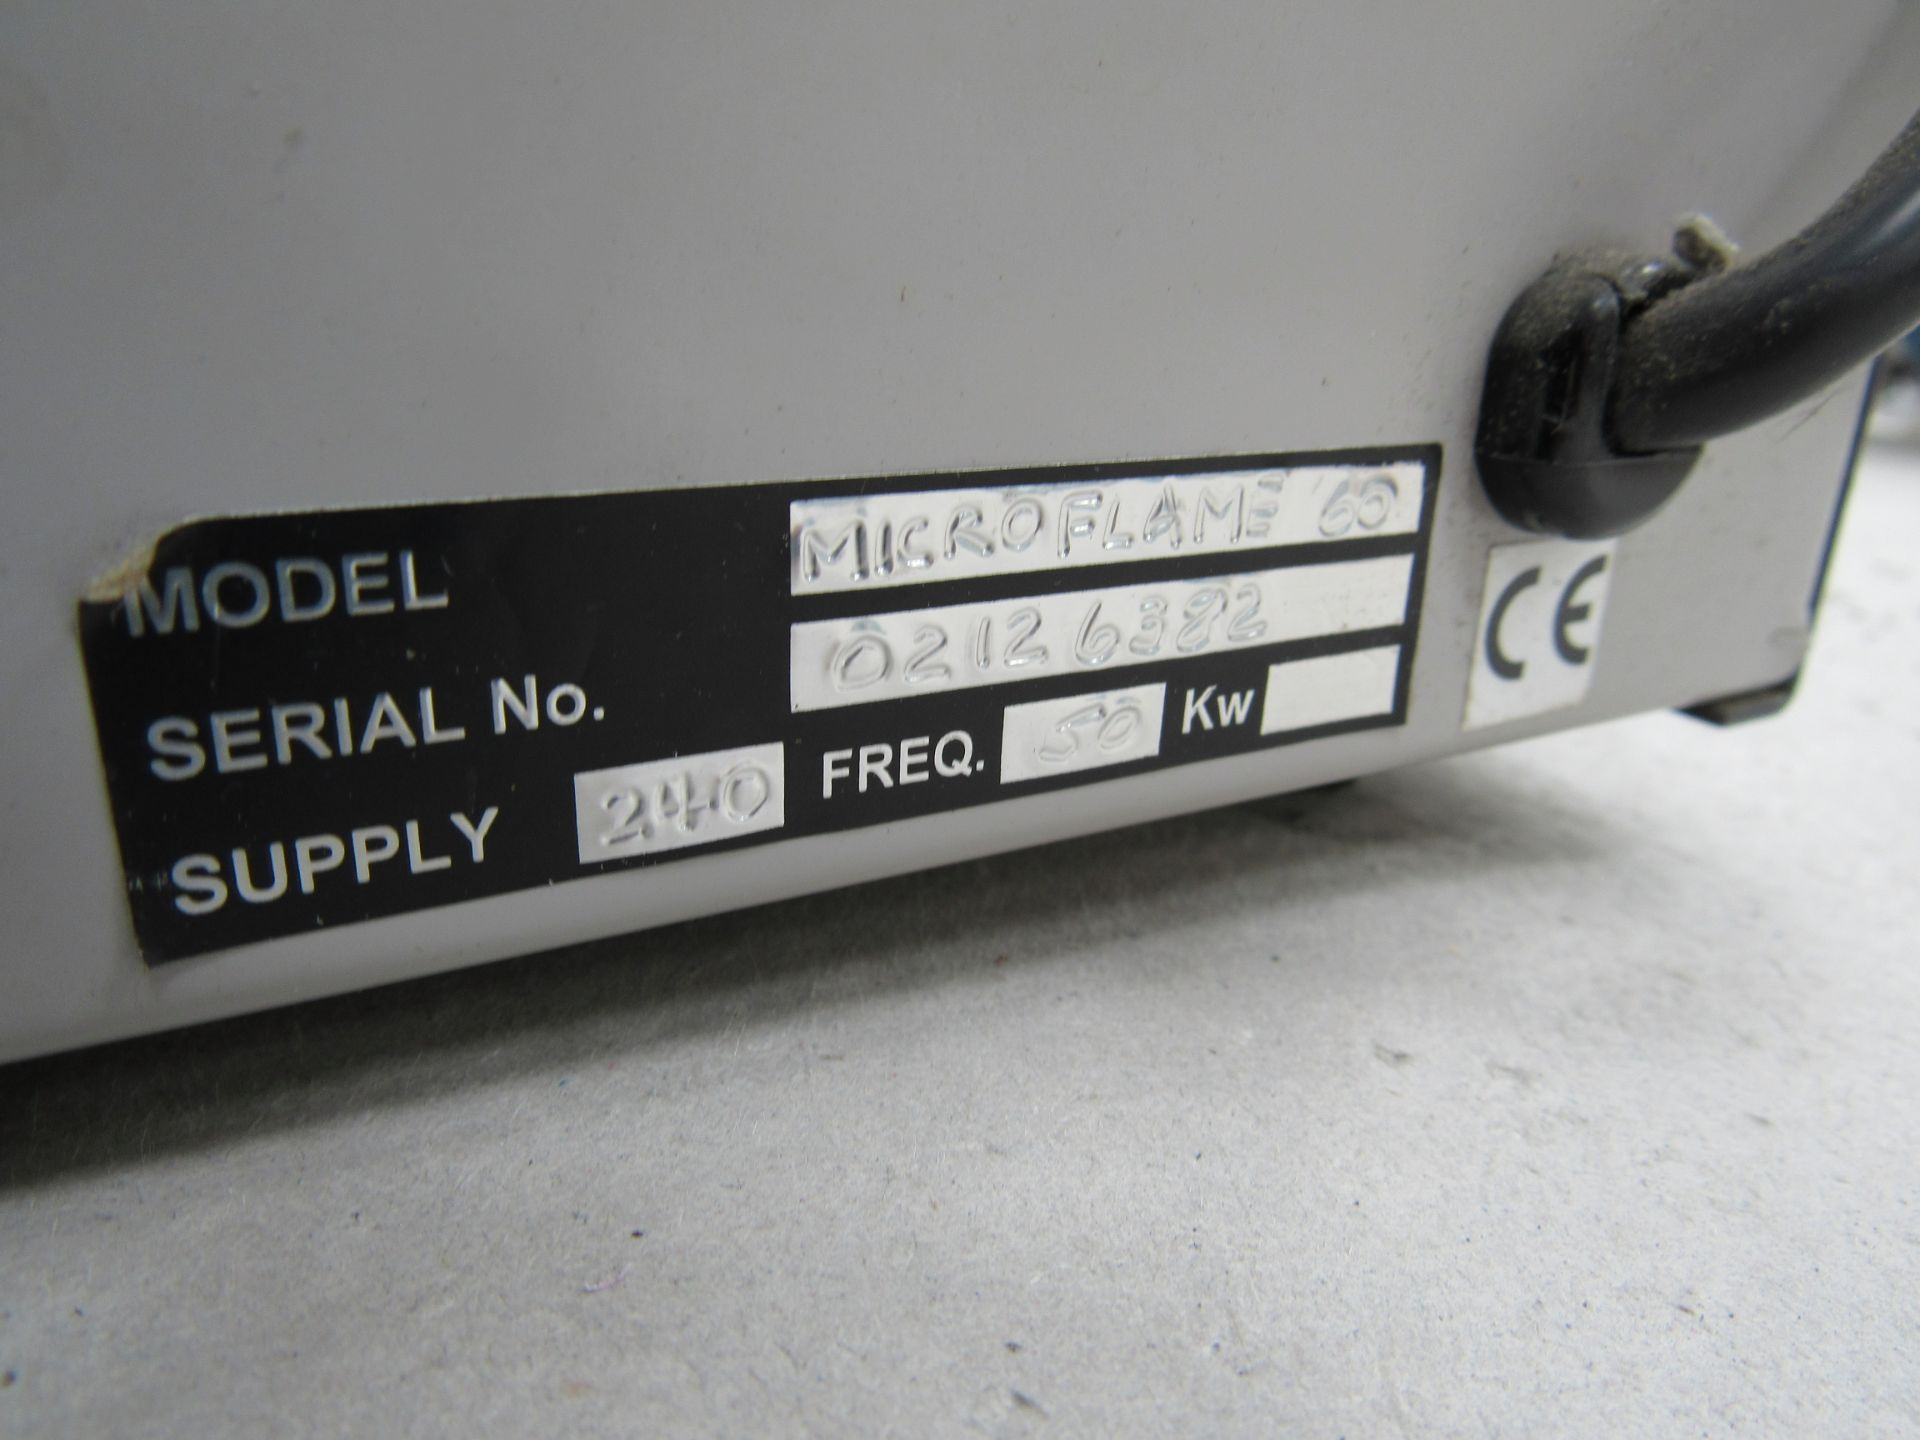 Microflame 60 Flame Polisher Serial Number 02126382 - Image 3 of 3